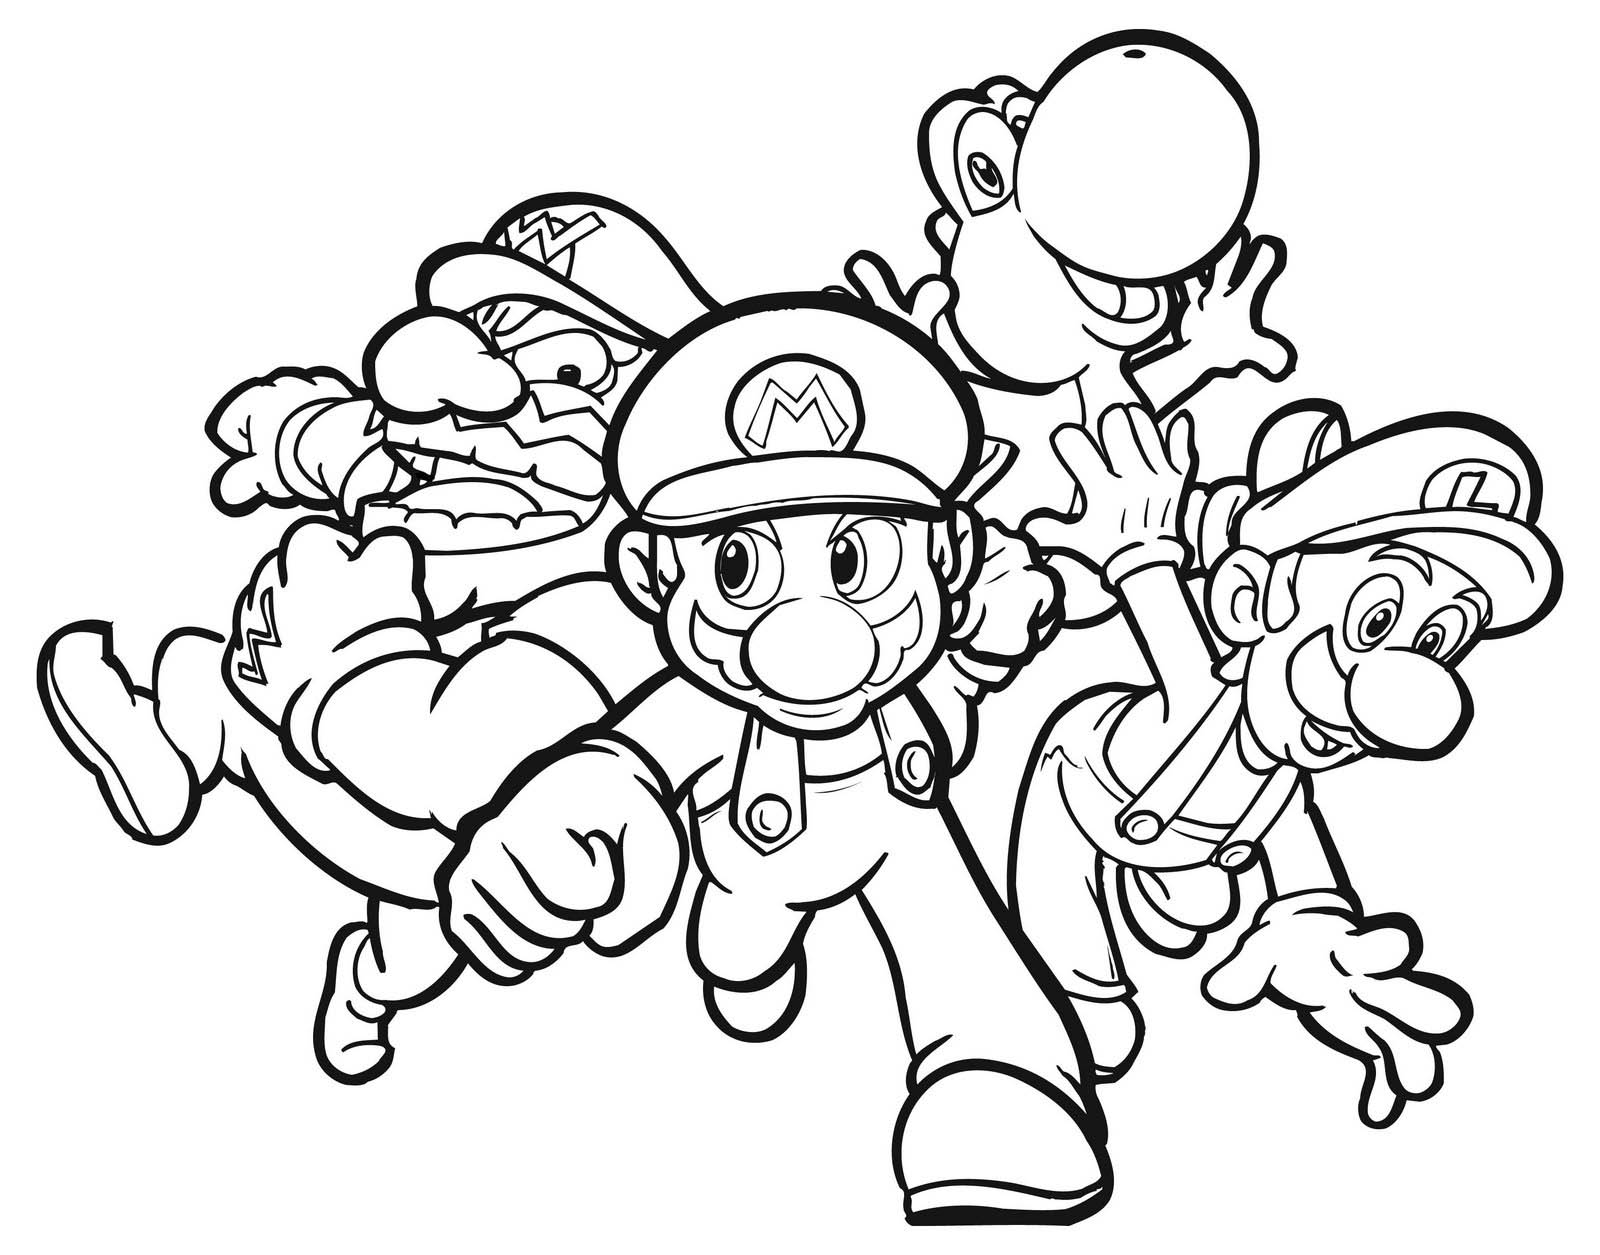 mario bro yoshi coloring pages - photo#15